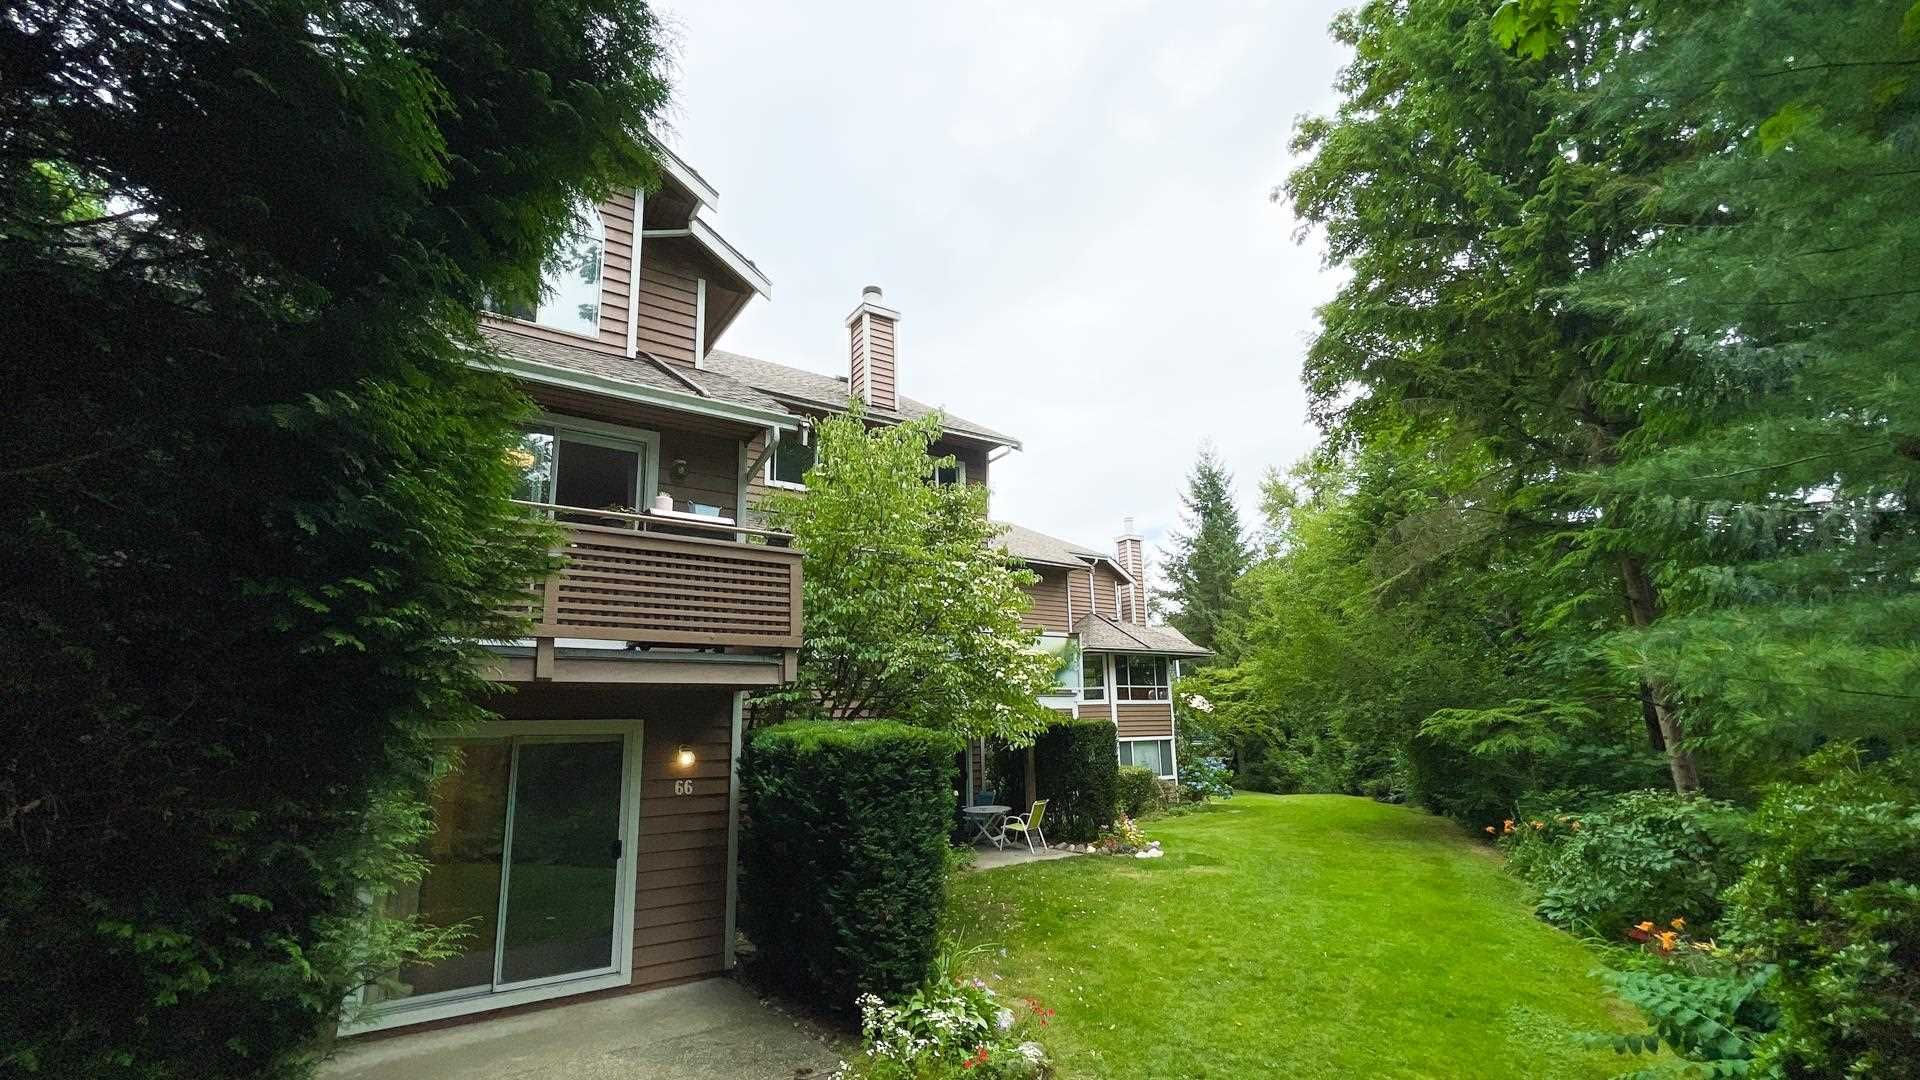 Photo 30: Photos: 66 9000 ASH GROVE CRESCENT in Burnaby: Forest Hills BN Townhouse for sale (Burnaby North)  : MLS®# R2603744